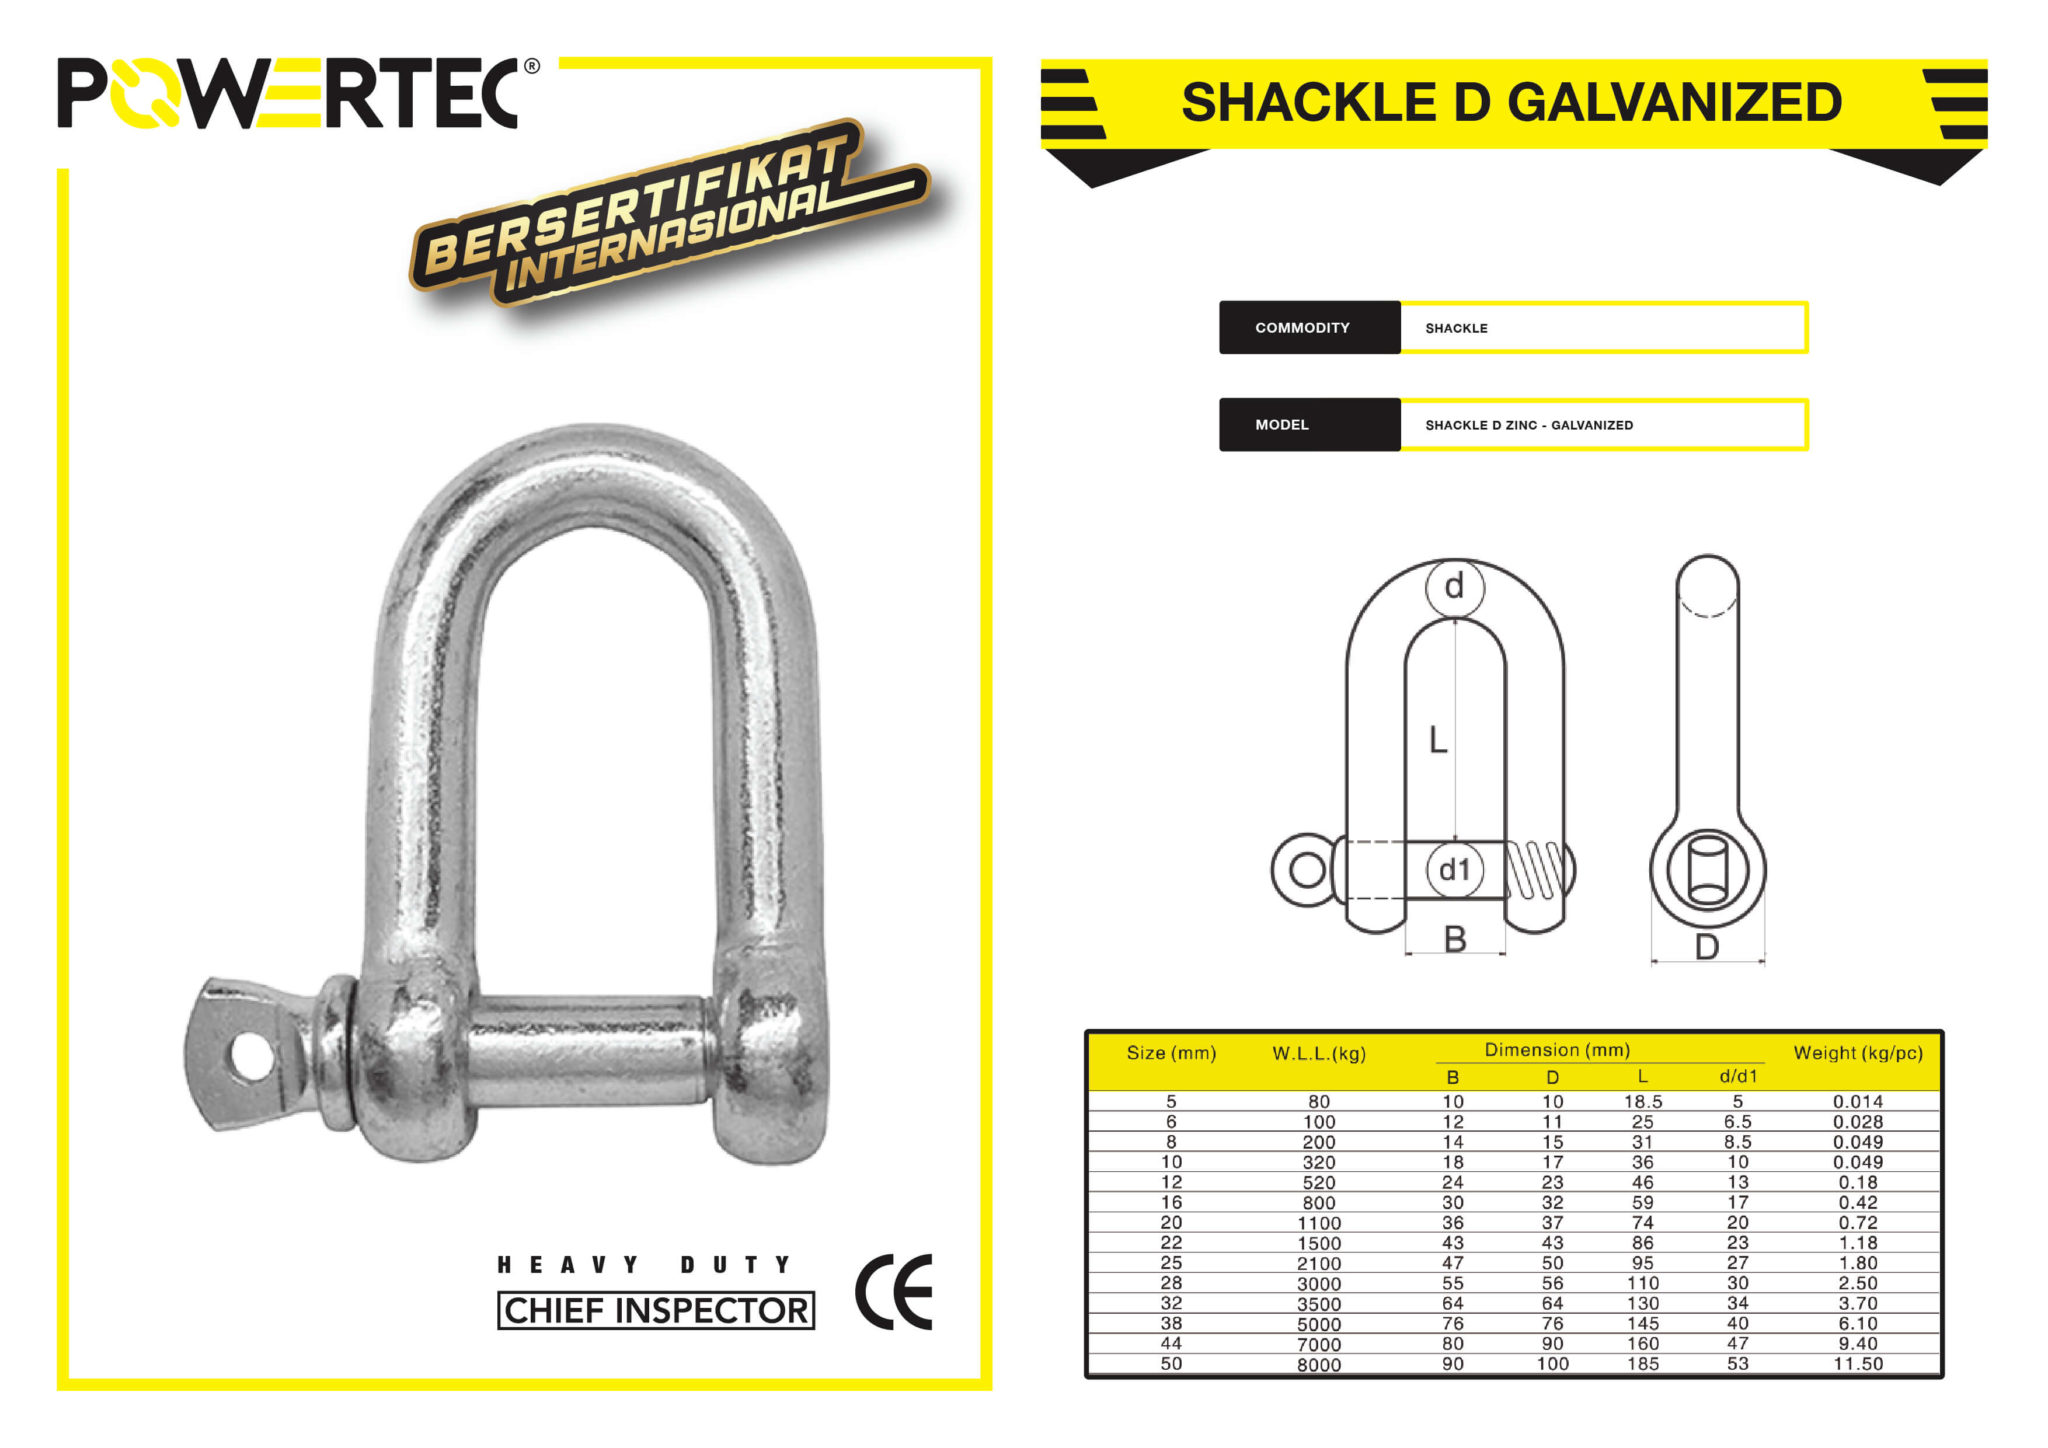 POWERTEC SHACKLE D GALVANIZED BROCHURE